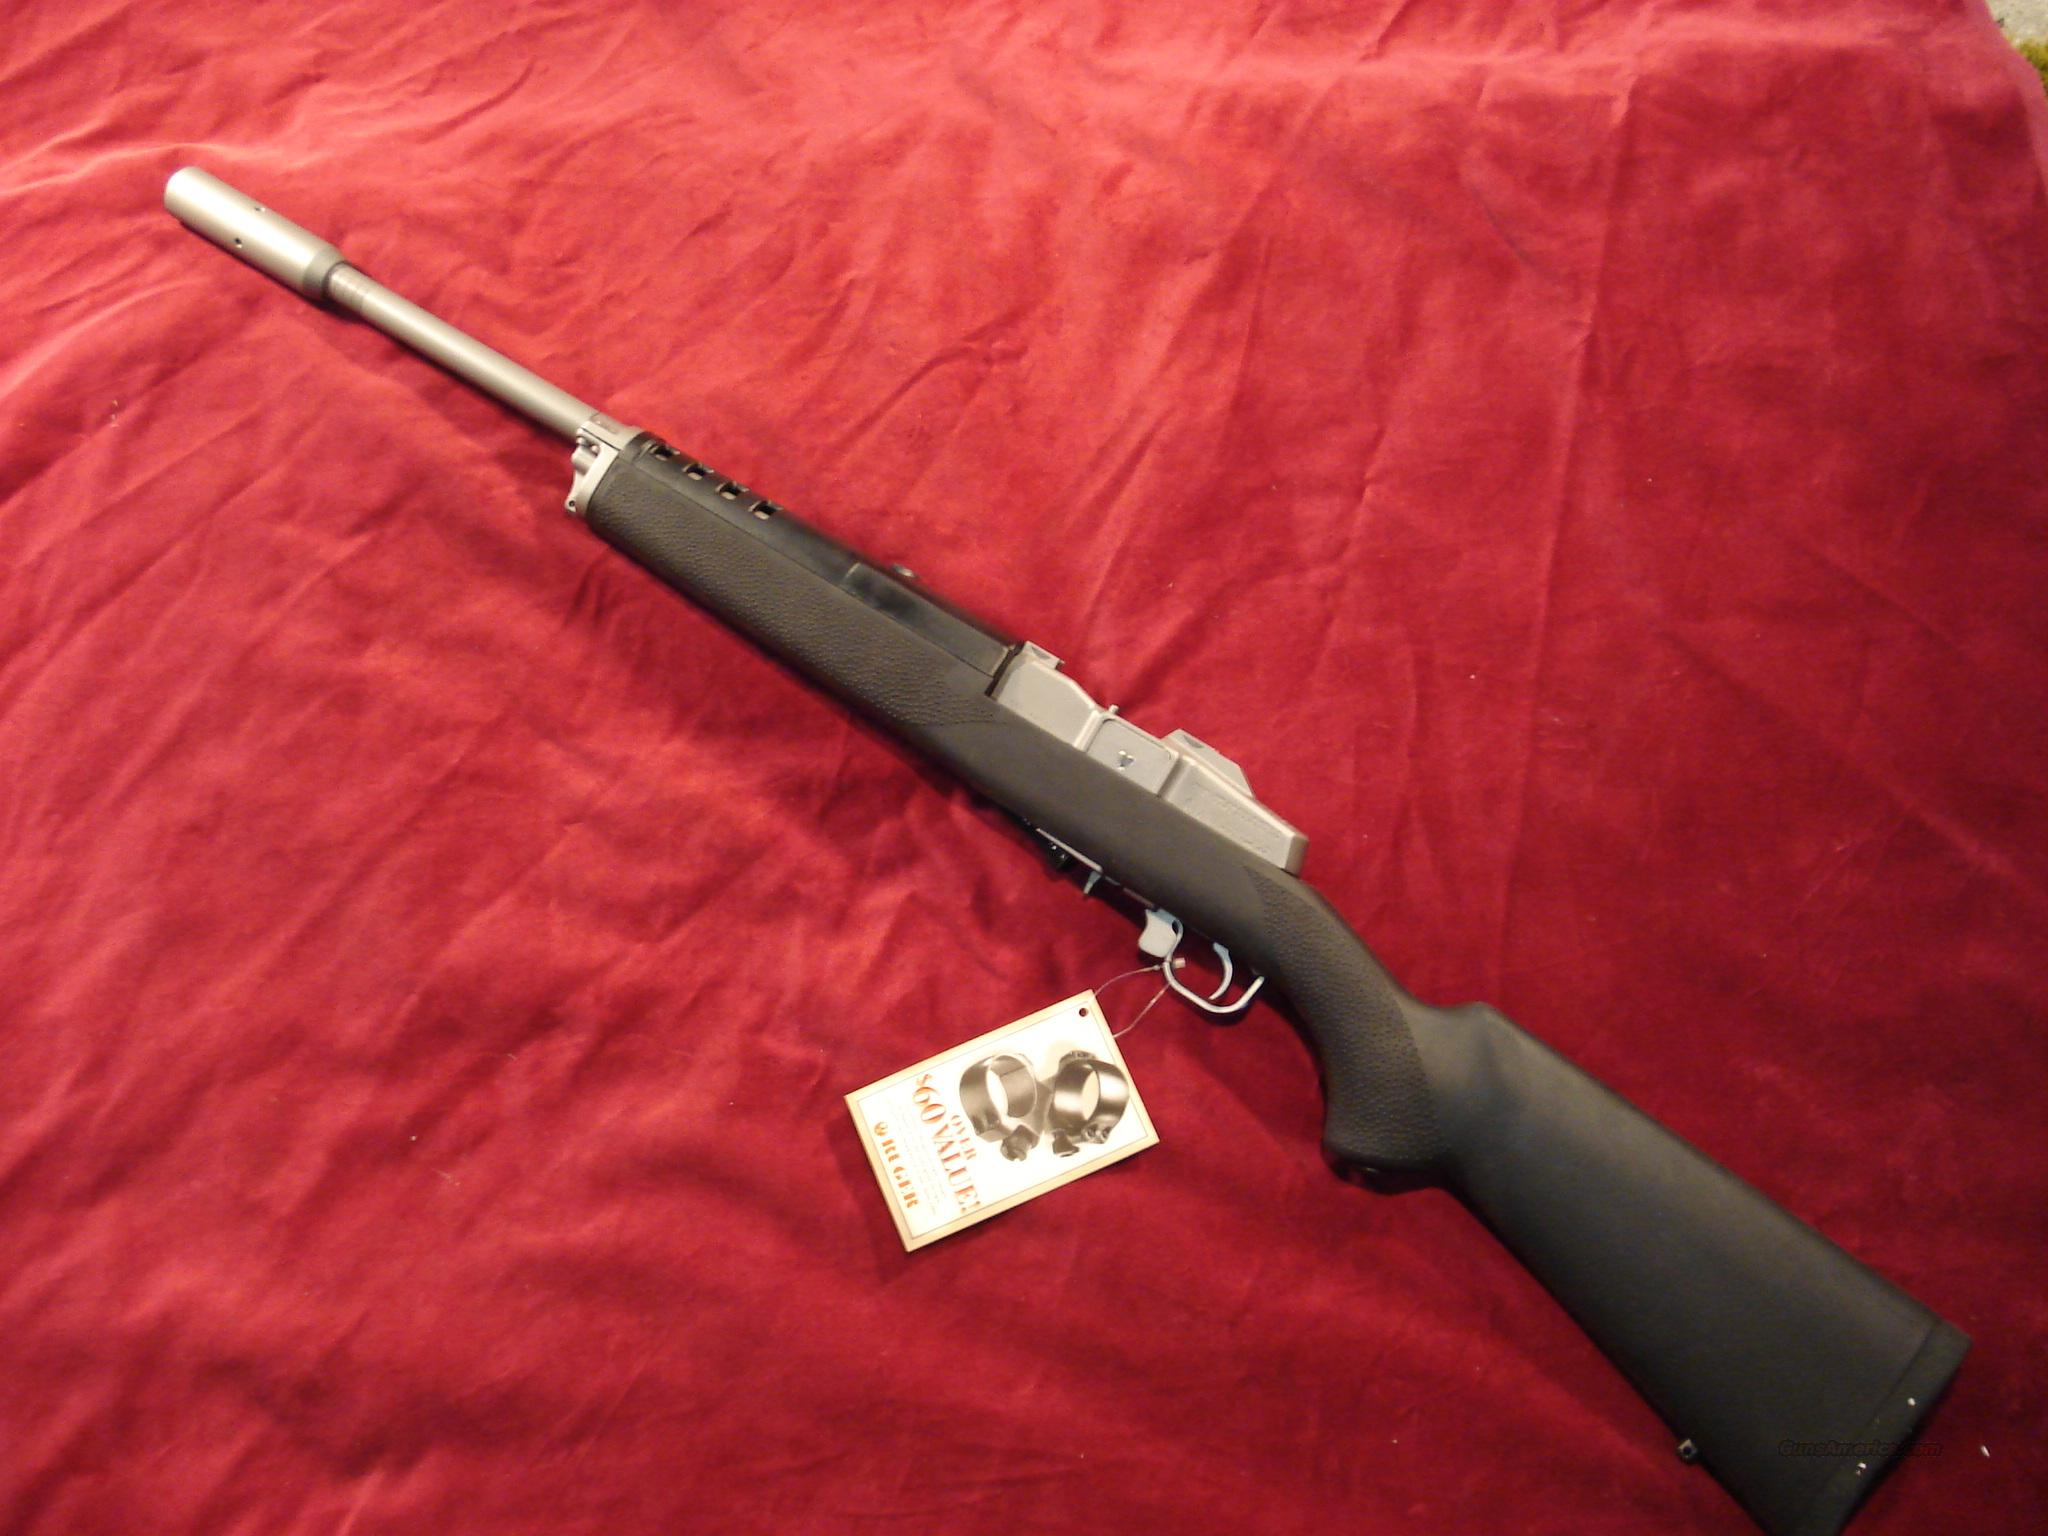 RUGER MINI 14 TARGET RIFLE W/HOGUE STOCK NEW (KM-14/5TH)